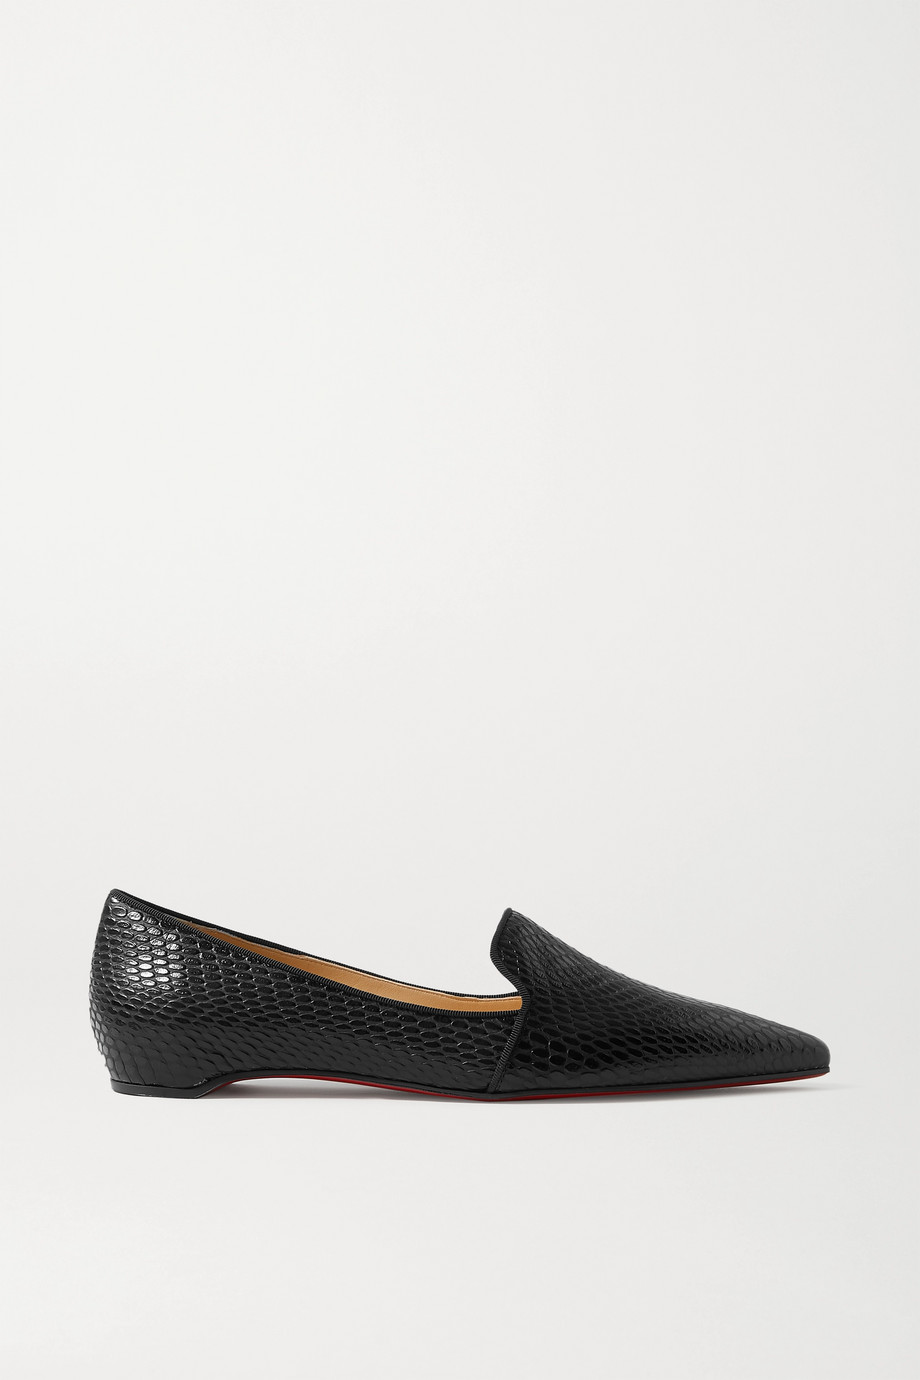 CHRISTIAN LOUBOUTIN Kashasha lizard-effect leather loafers